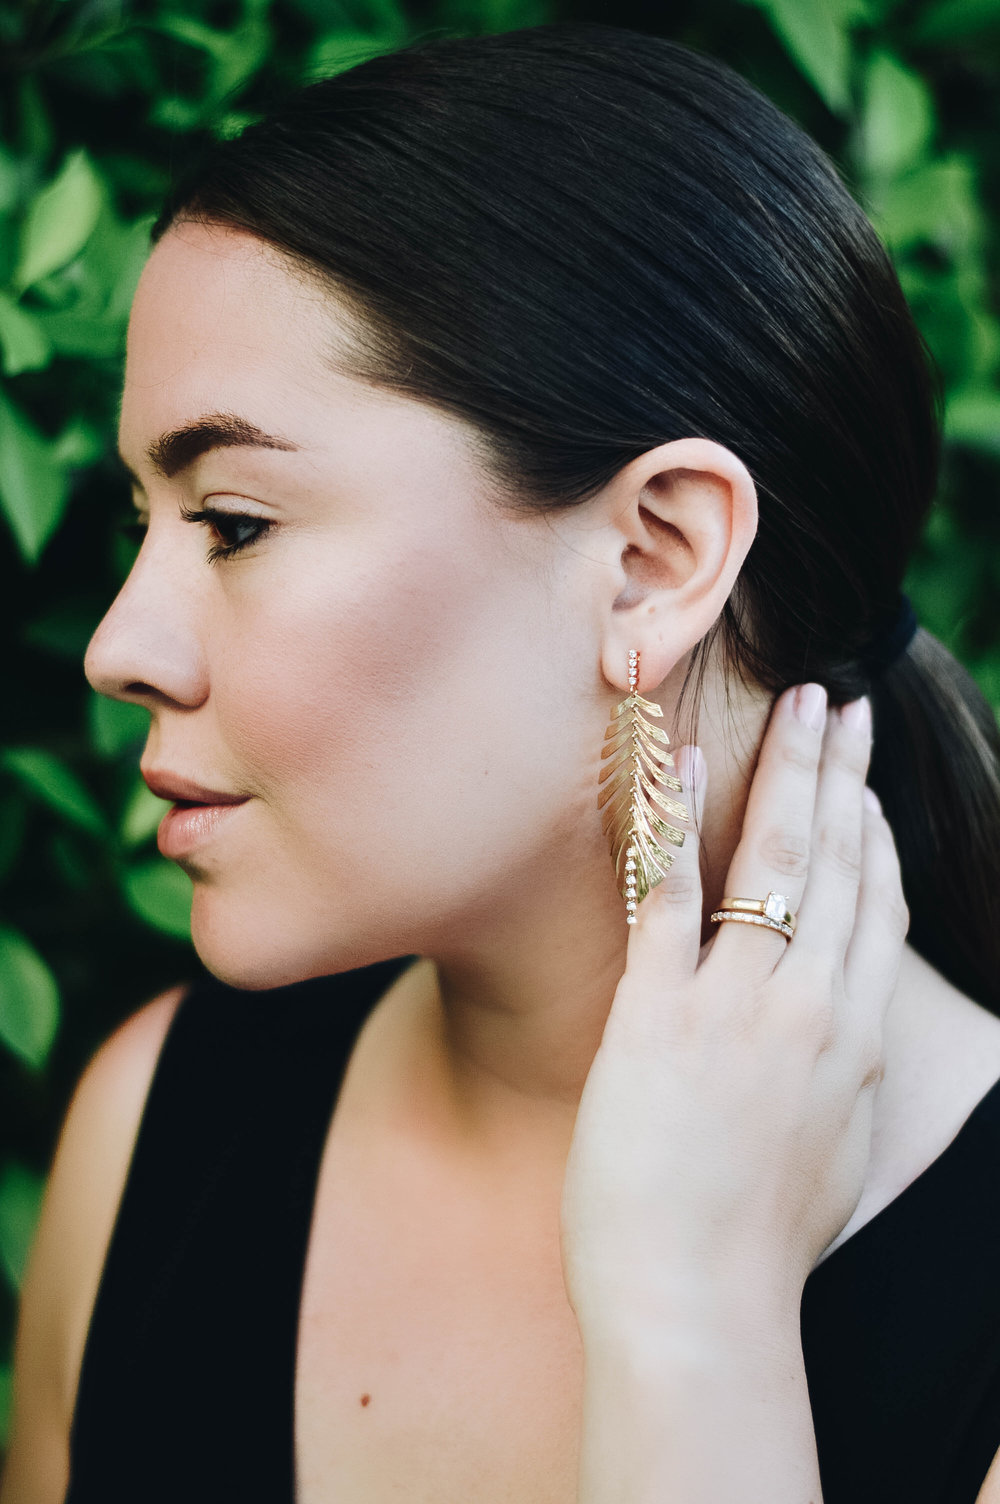 Diamond Palm Leaf Earrings from Hueb Jewelers via. www.birdieshoots.com